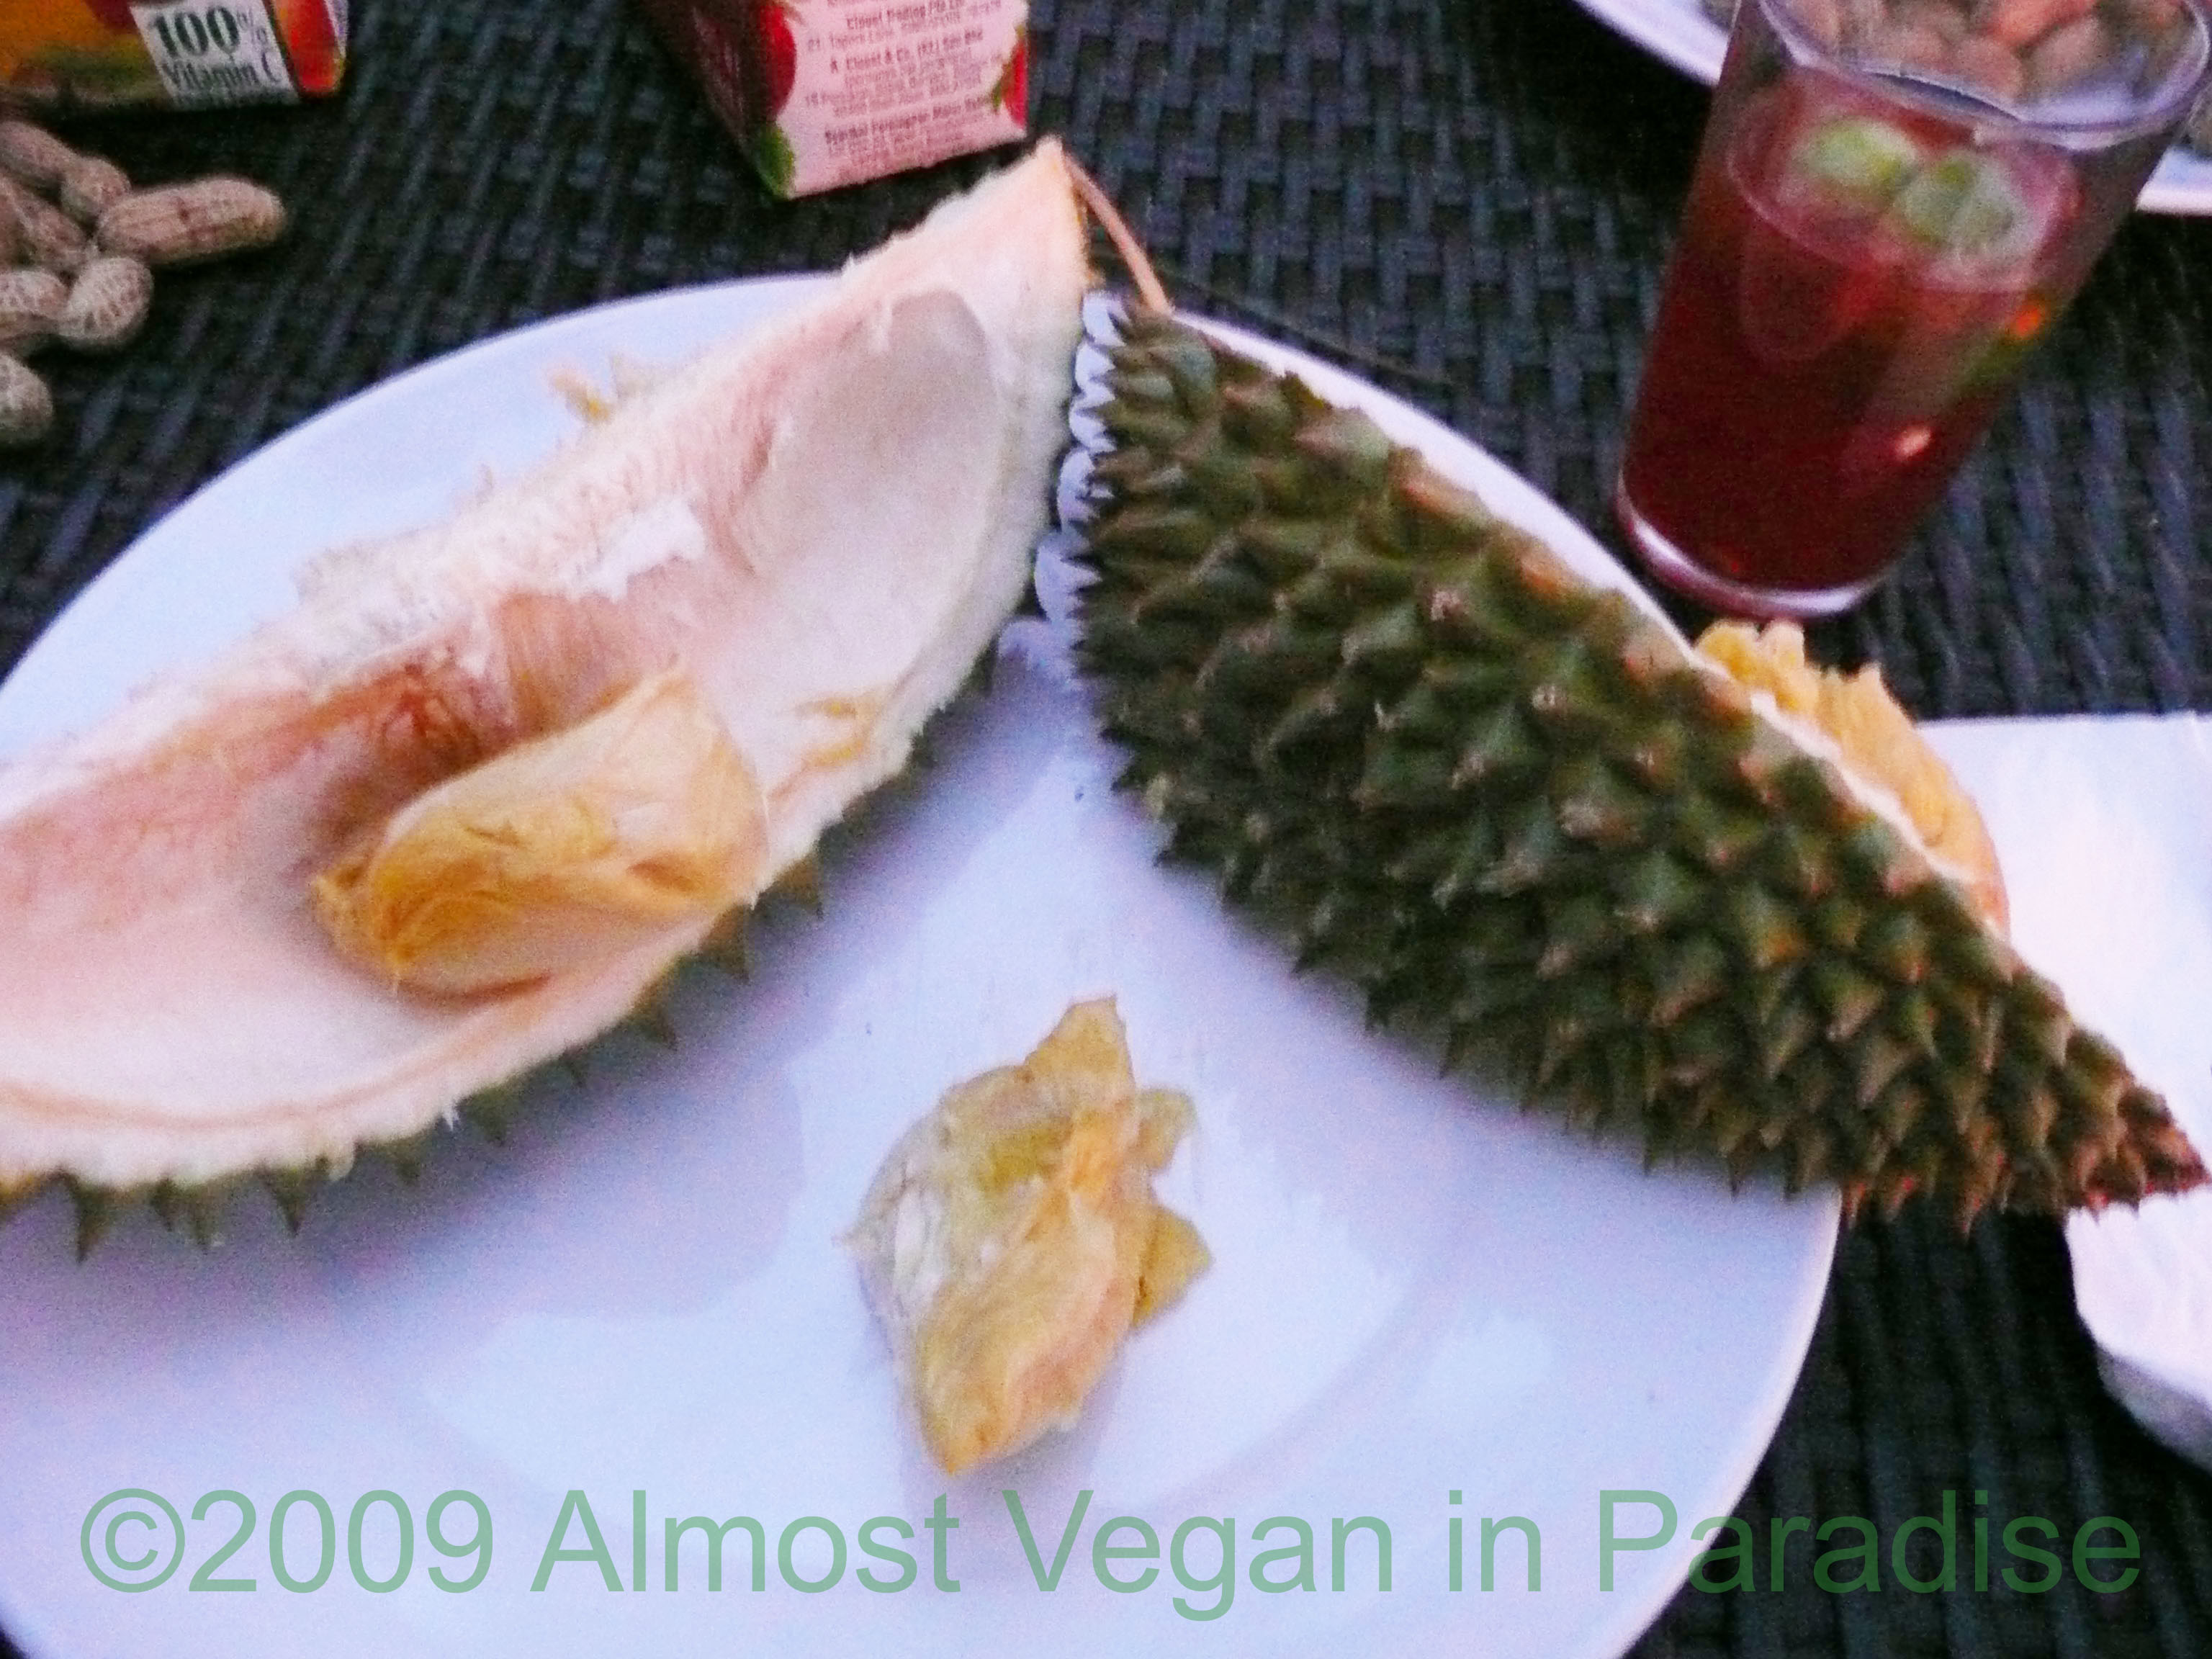 Spiny durian cut into wedges, exposing edible chunks of creamy fruit.